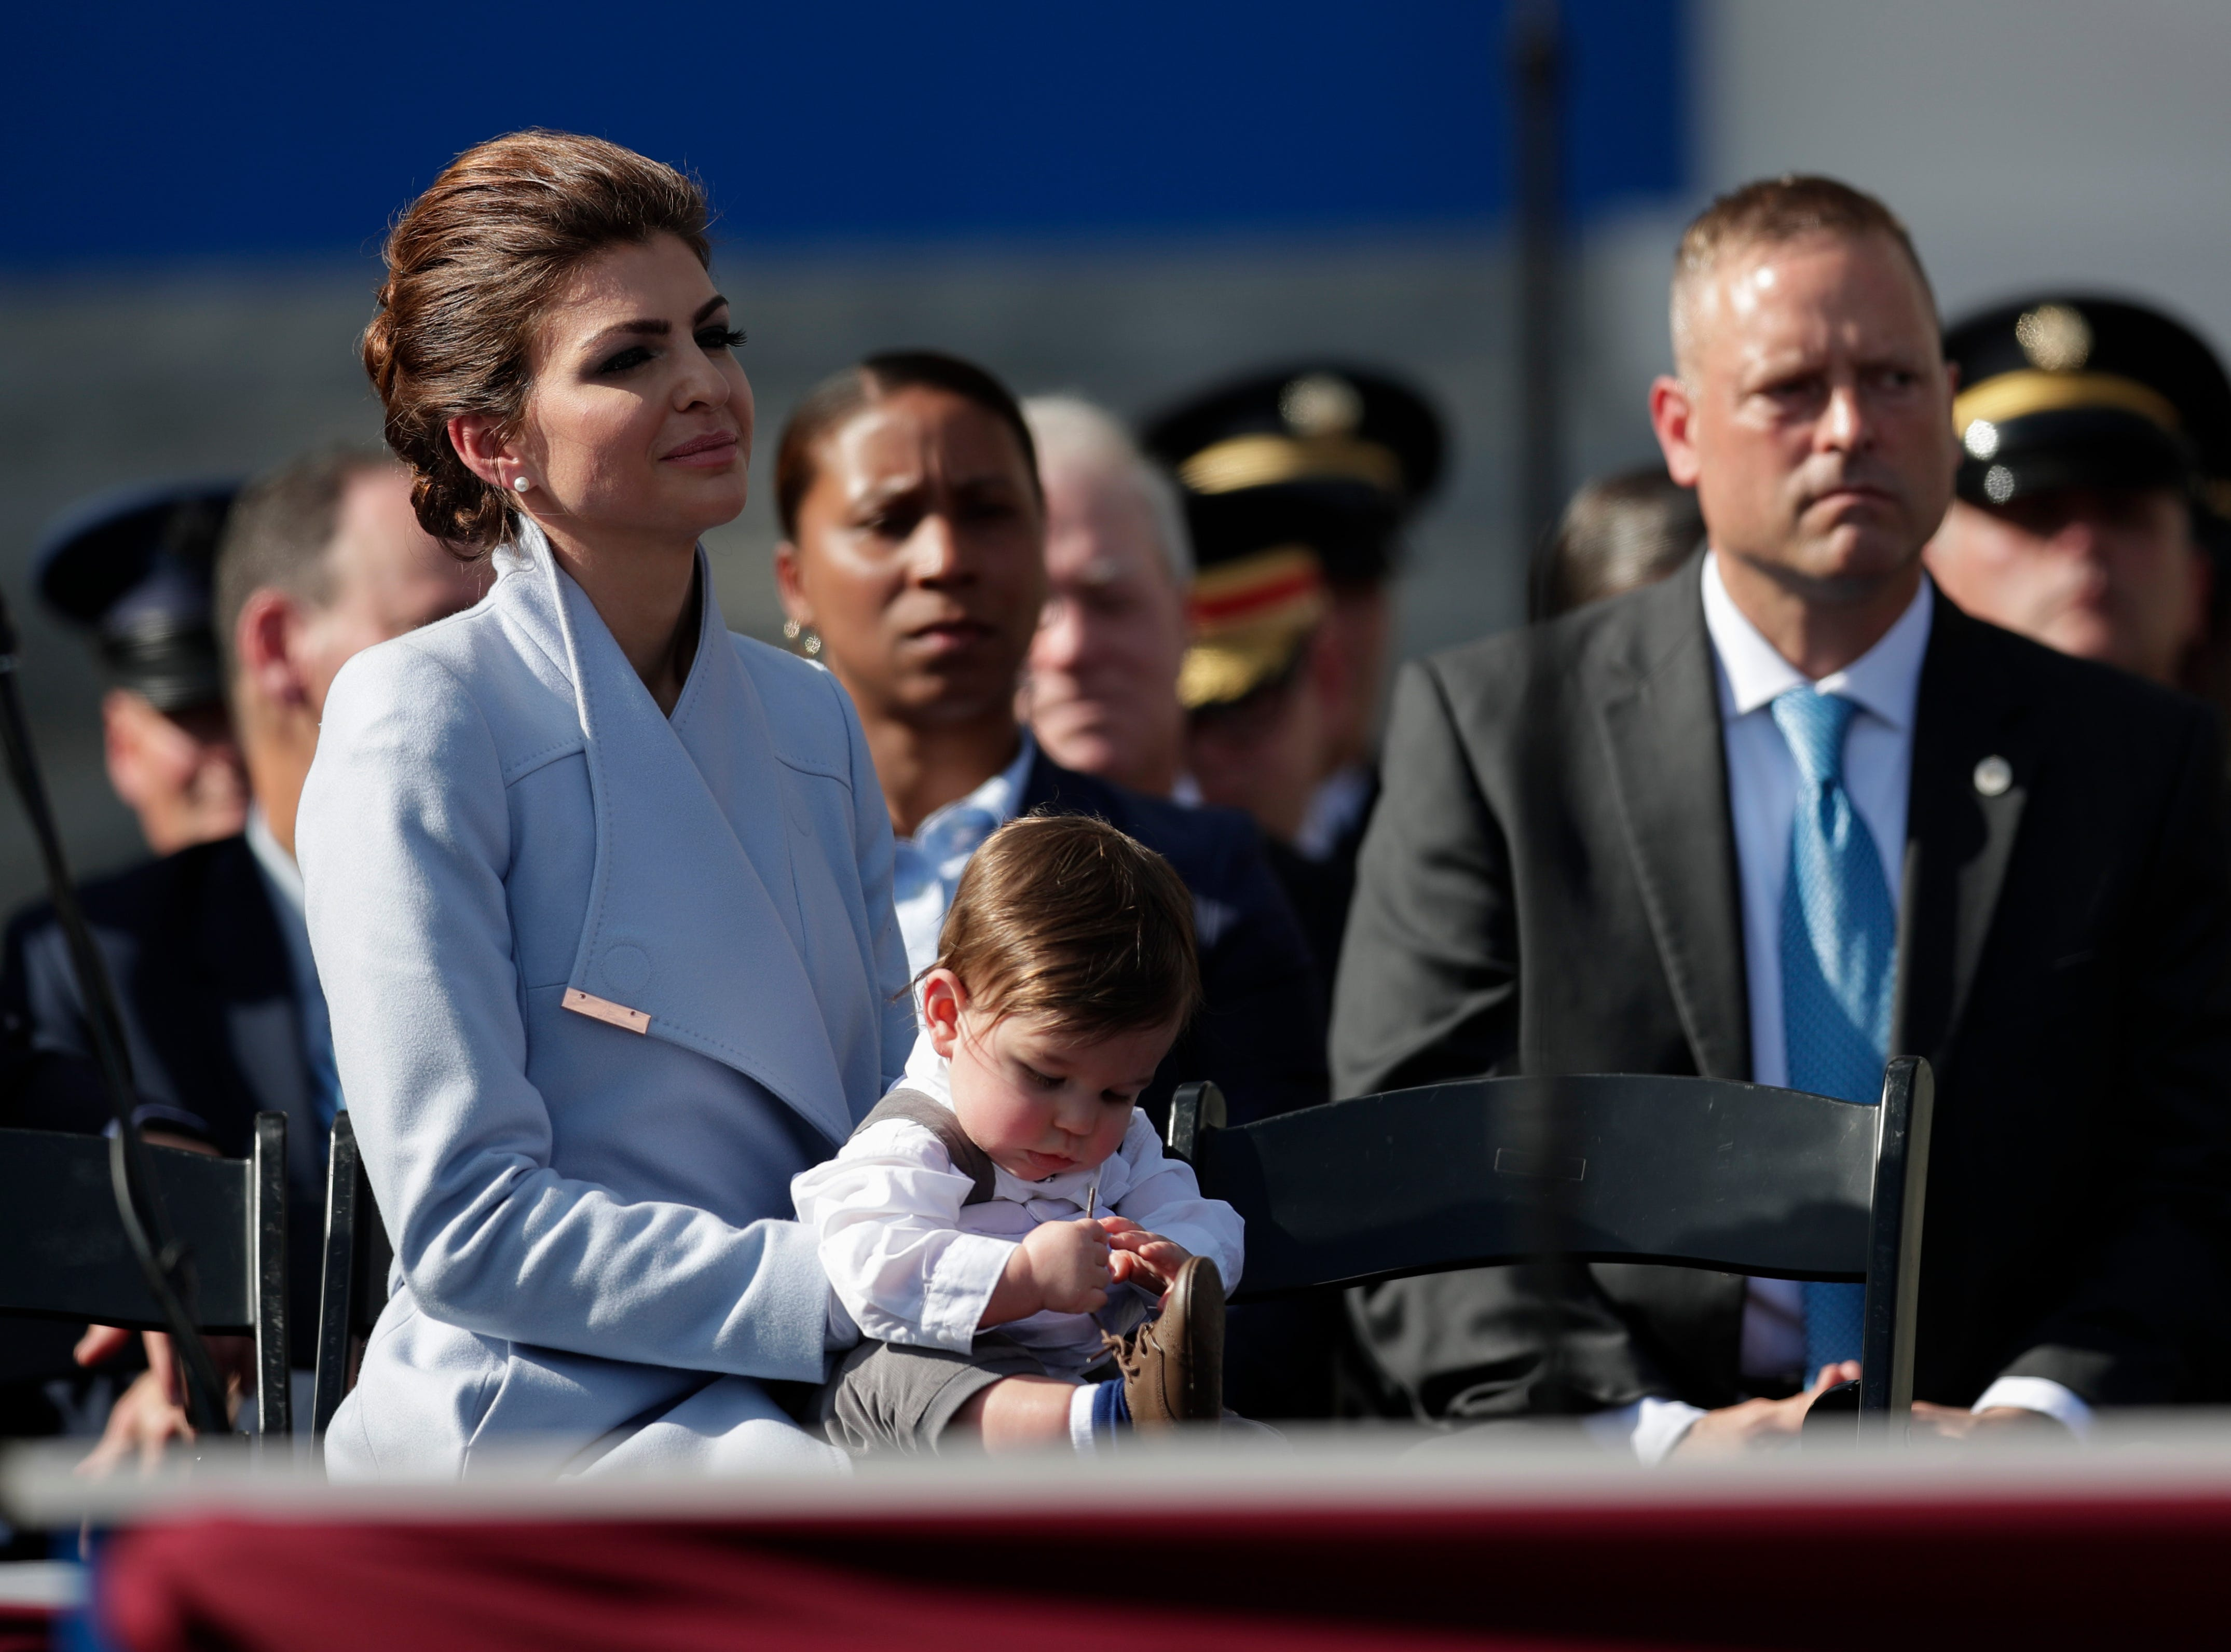 First lady Casey DeSantis listens as her husband Gov. Ron DeSantis gives his inaugural speech during the 2019 inauguration ceremony on the steps of the Historic Capitol Building in Tallahassee Tuesday, Jan. 8, 2019.